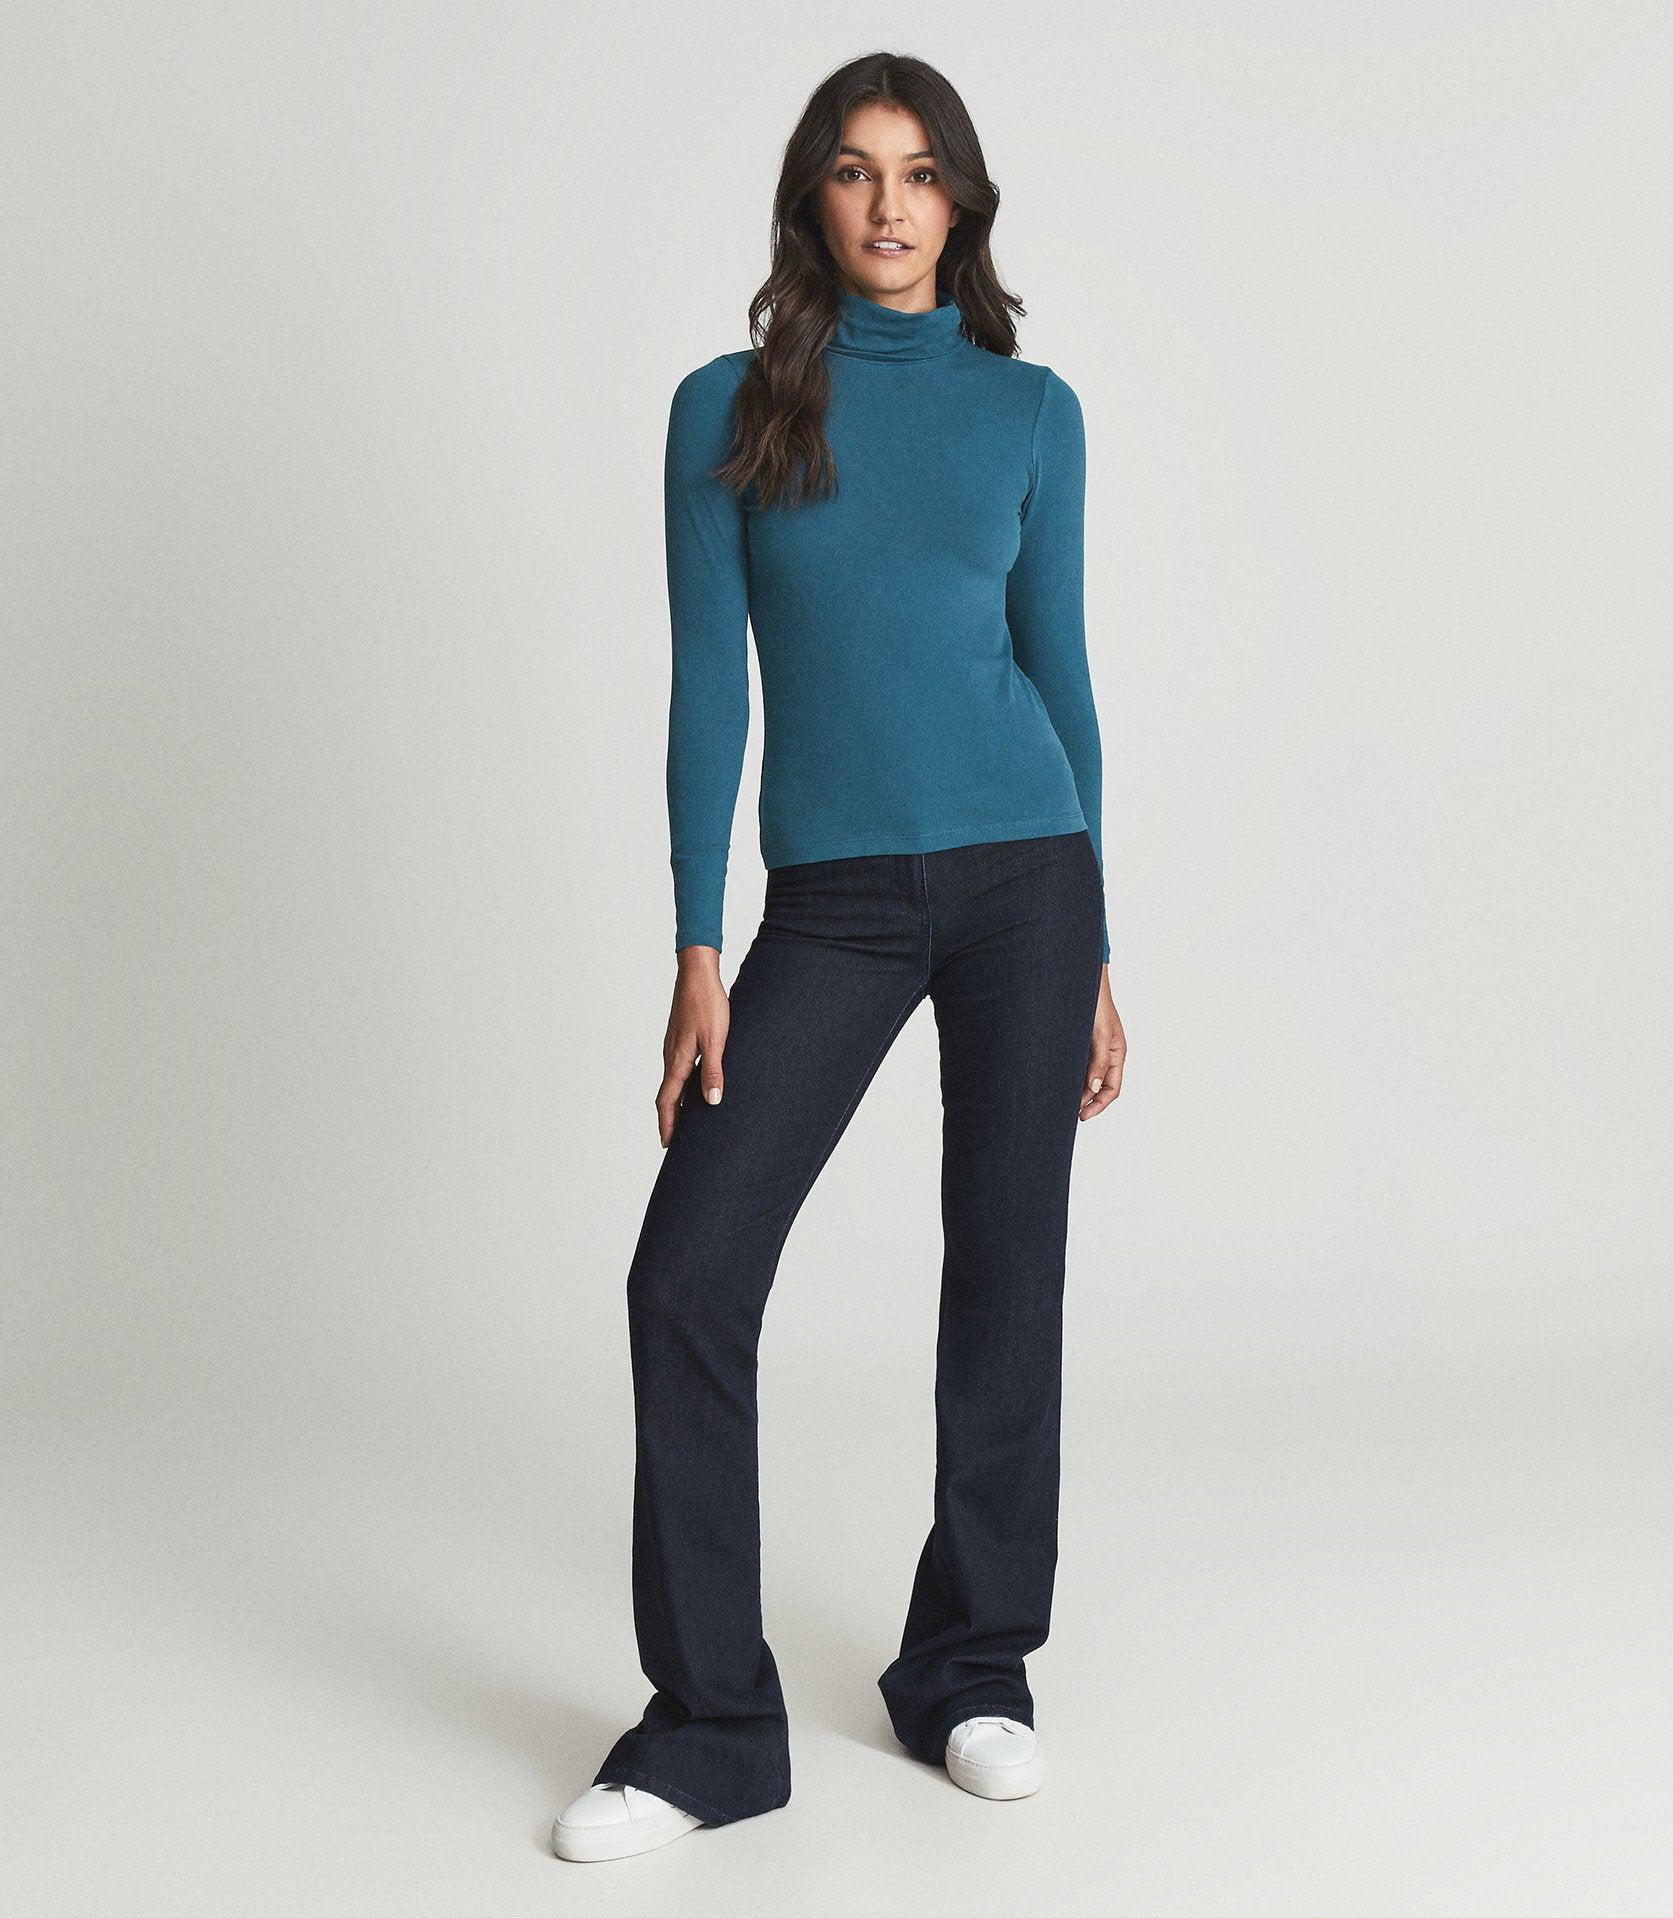 PHOEBE - JERSEY ROLL NECK TOP